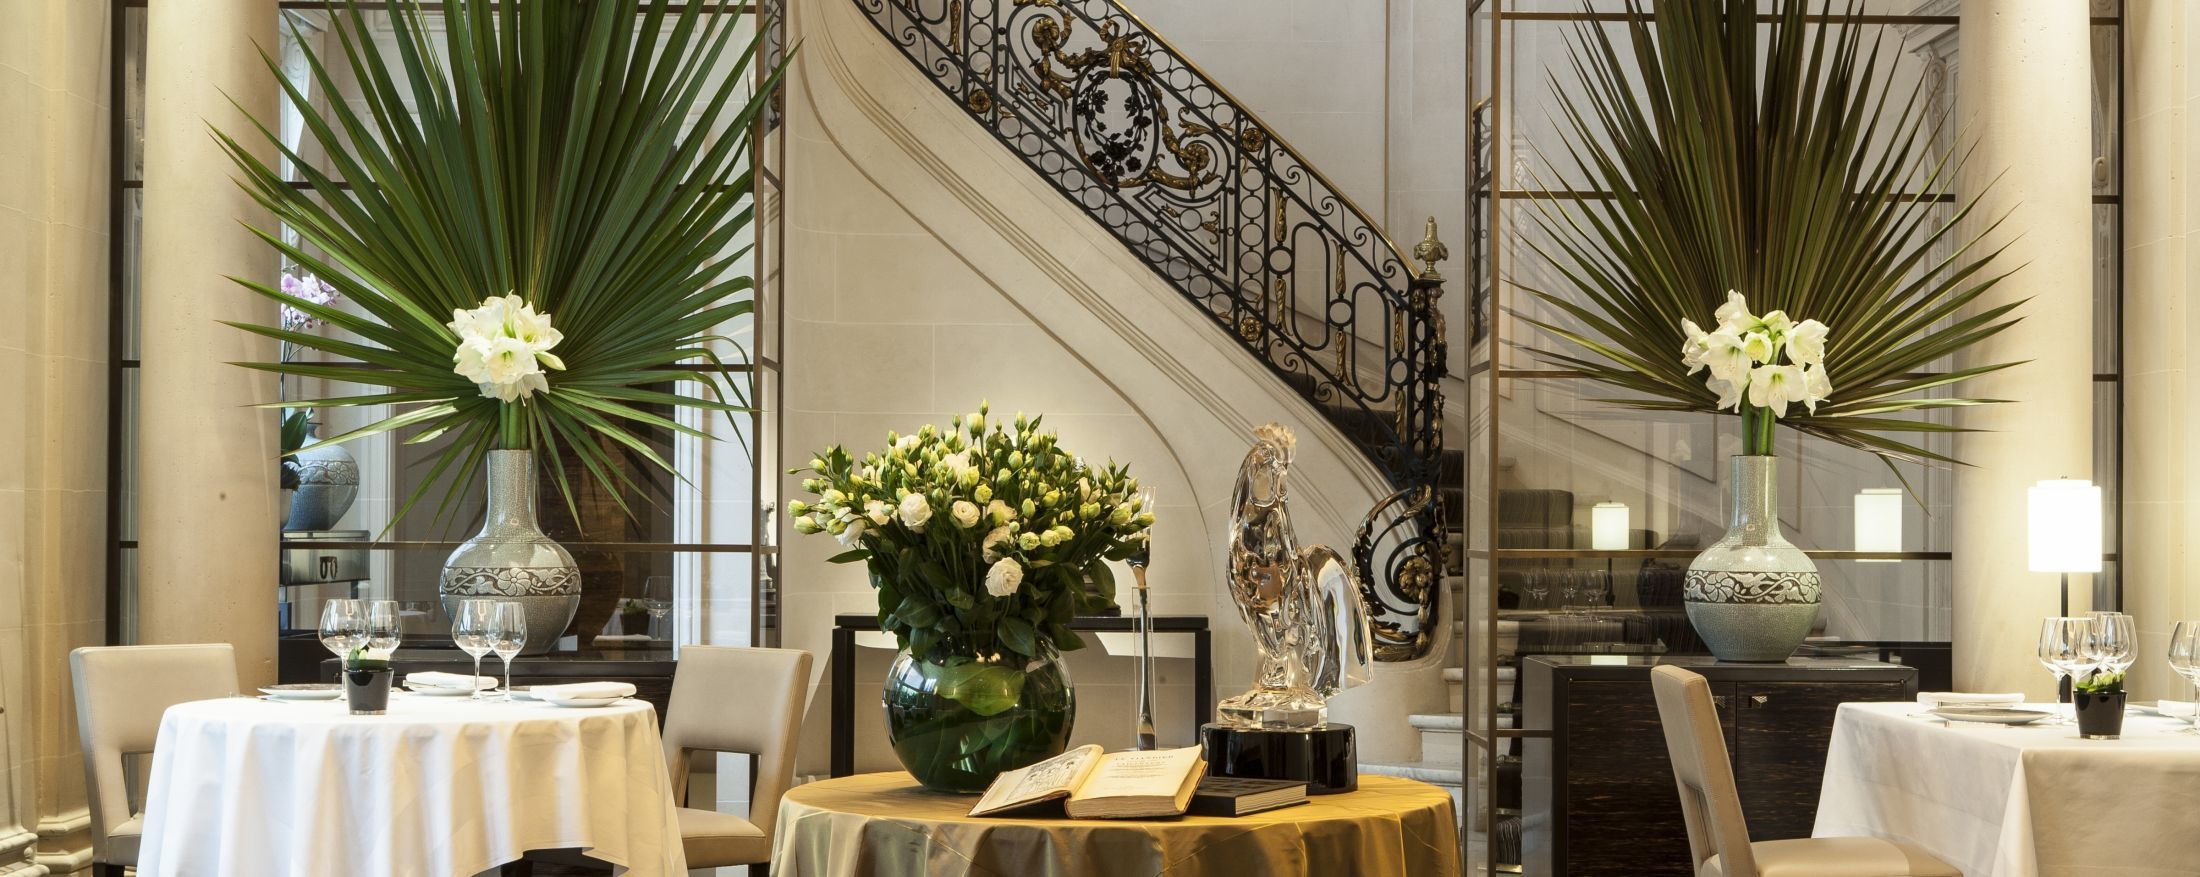 Taillevent Paris - Restaurant